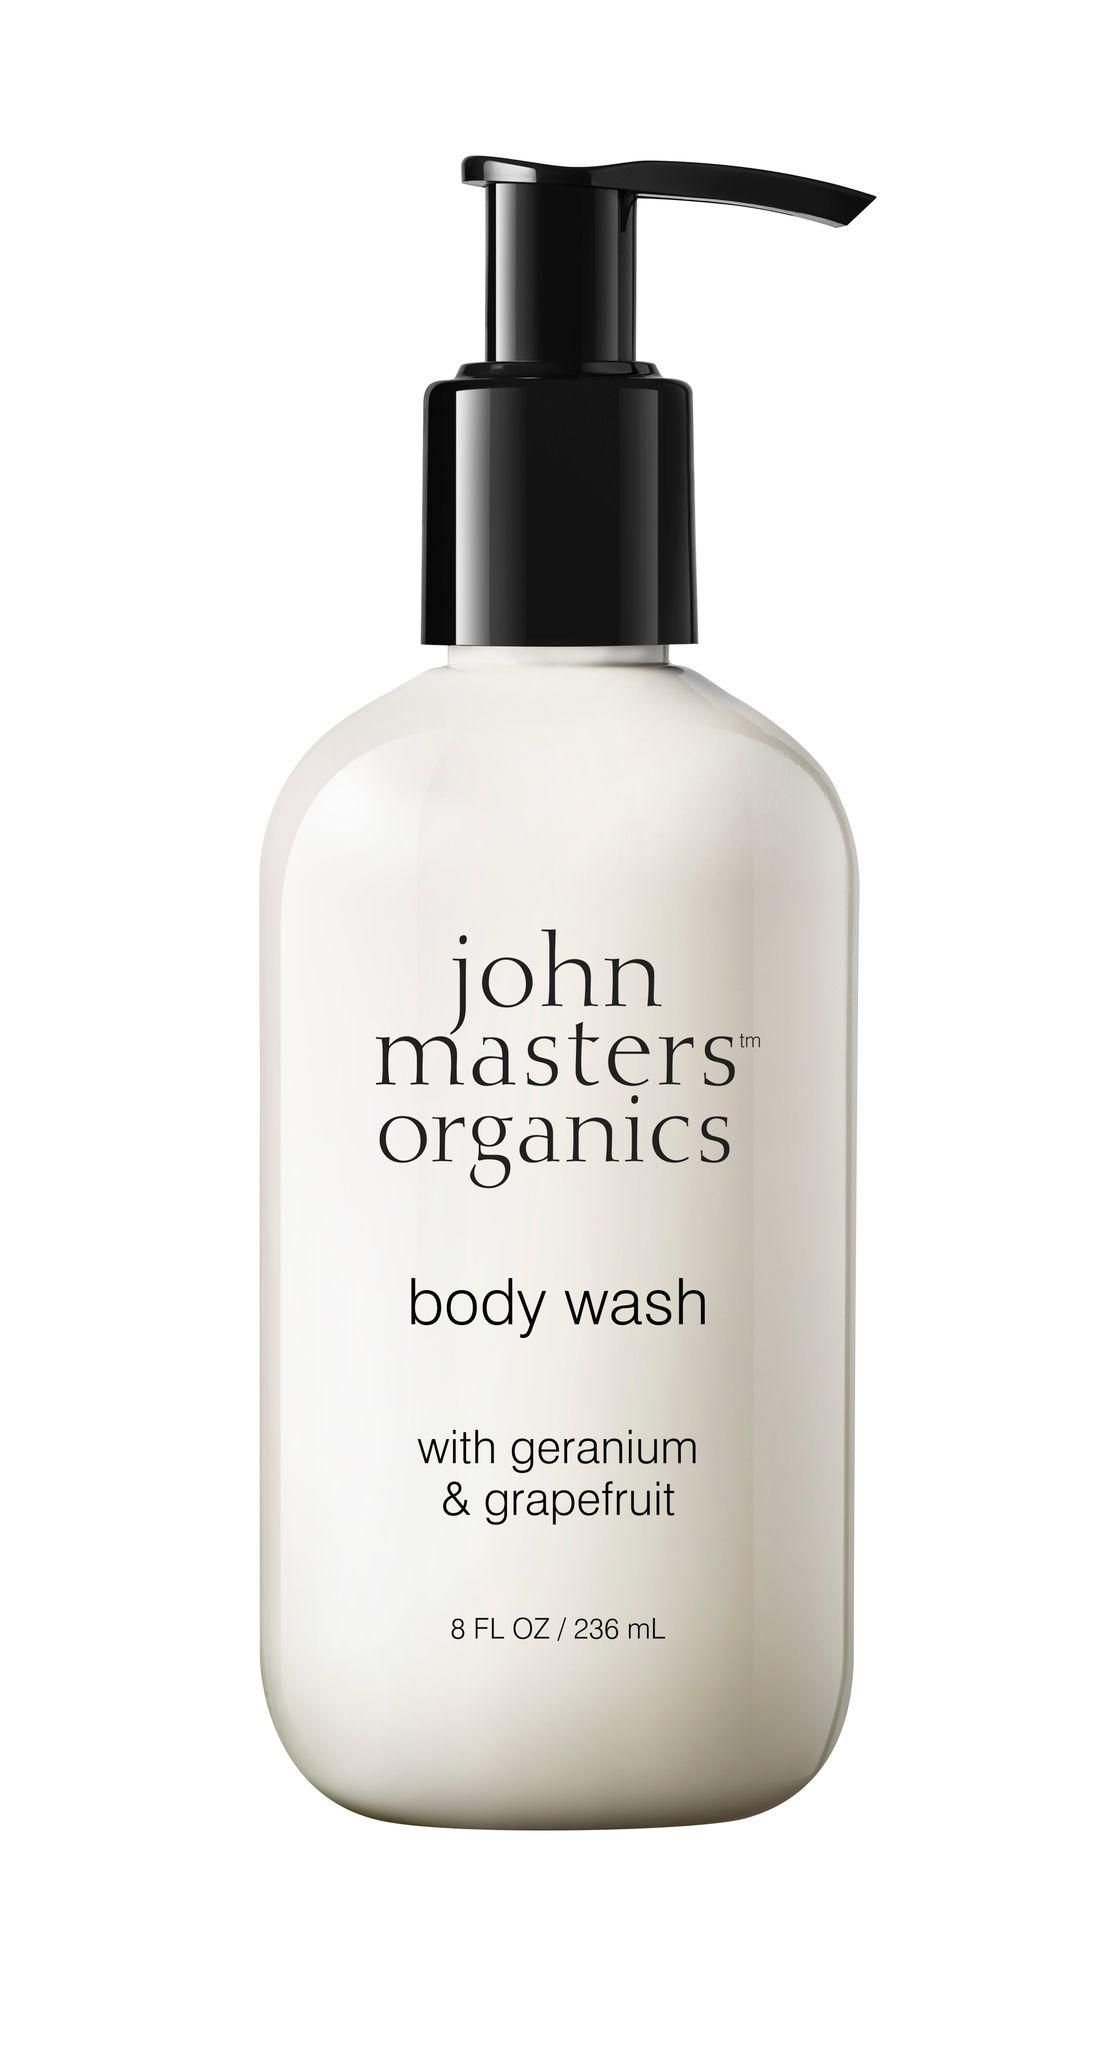 Body Wash with Geranium Grapefruit